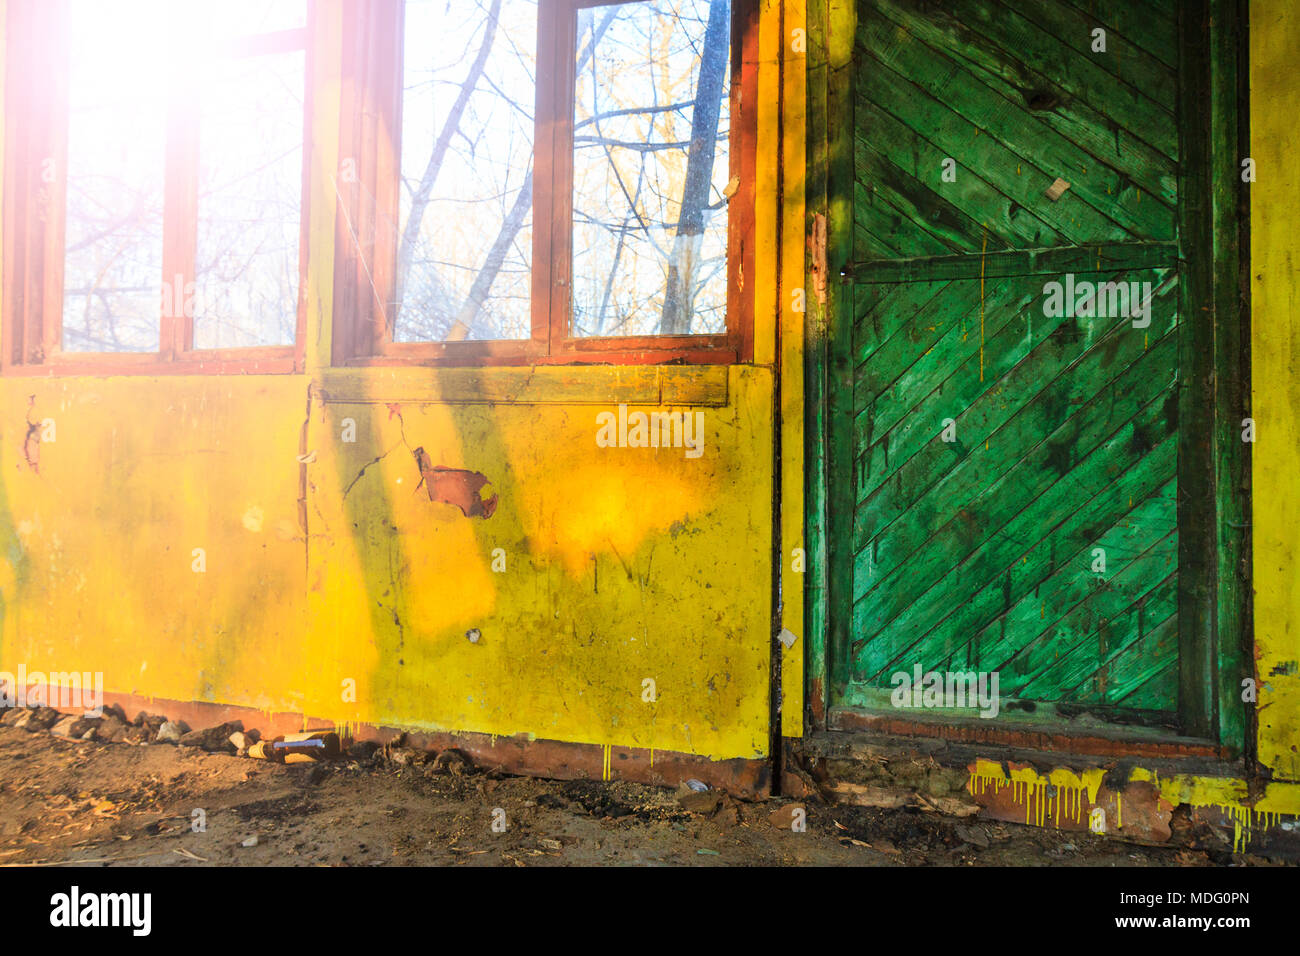 Colored Walls Stock Photos & Colored Walls Stock Images - Alamy